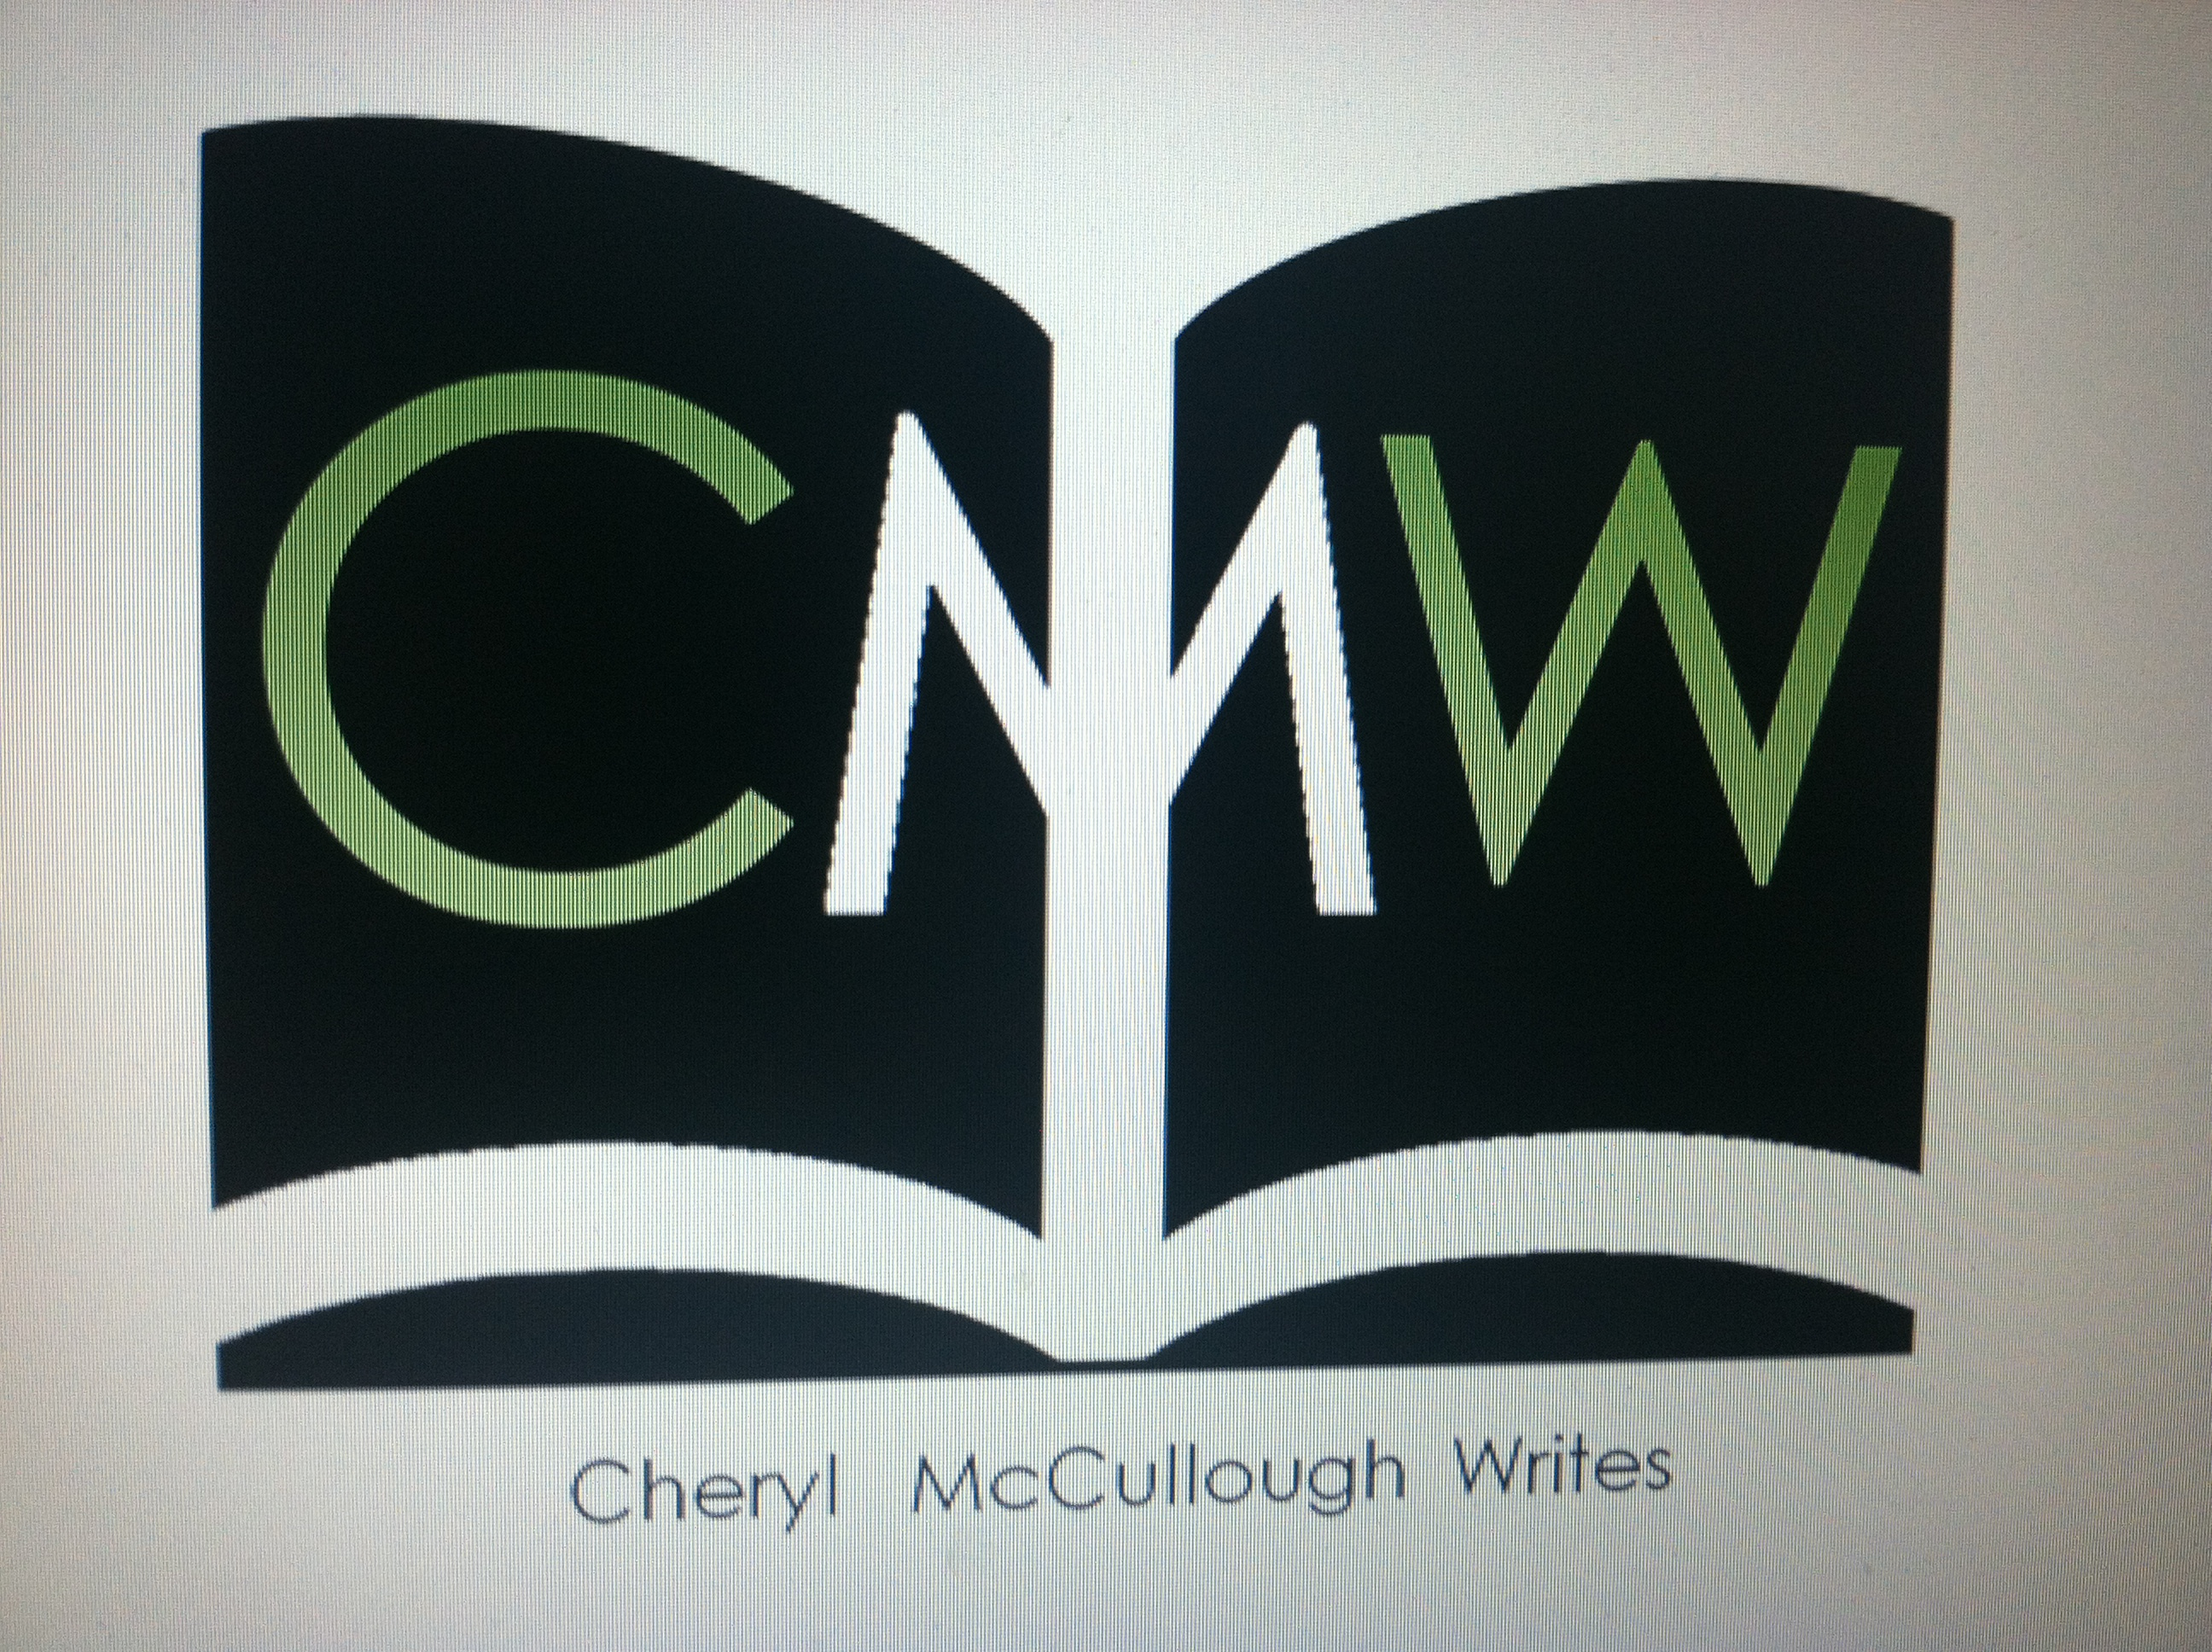 Cheryl McCullough Writes